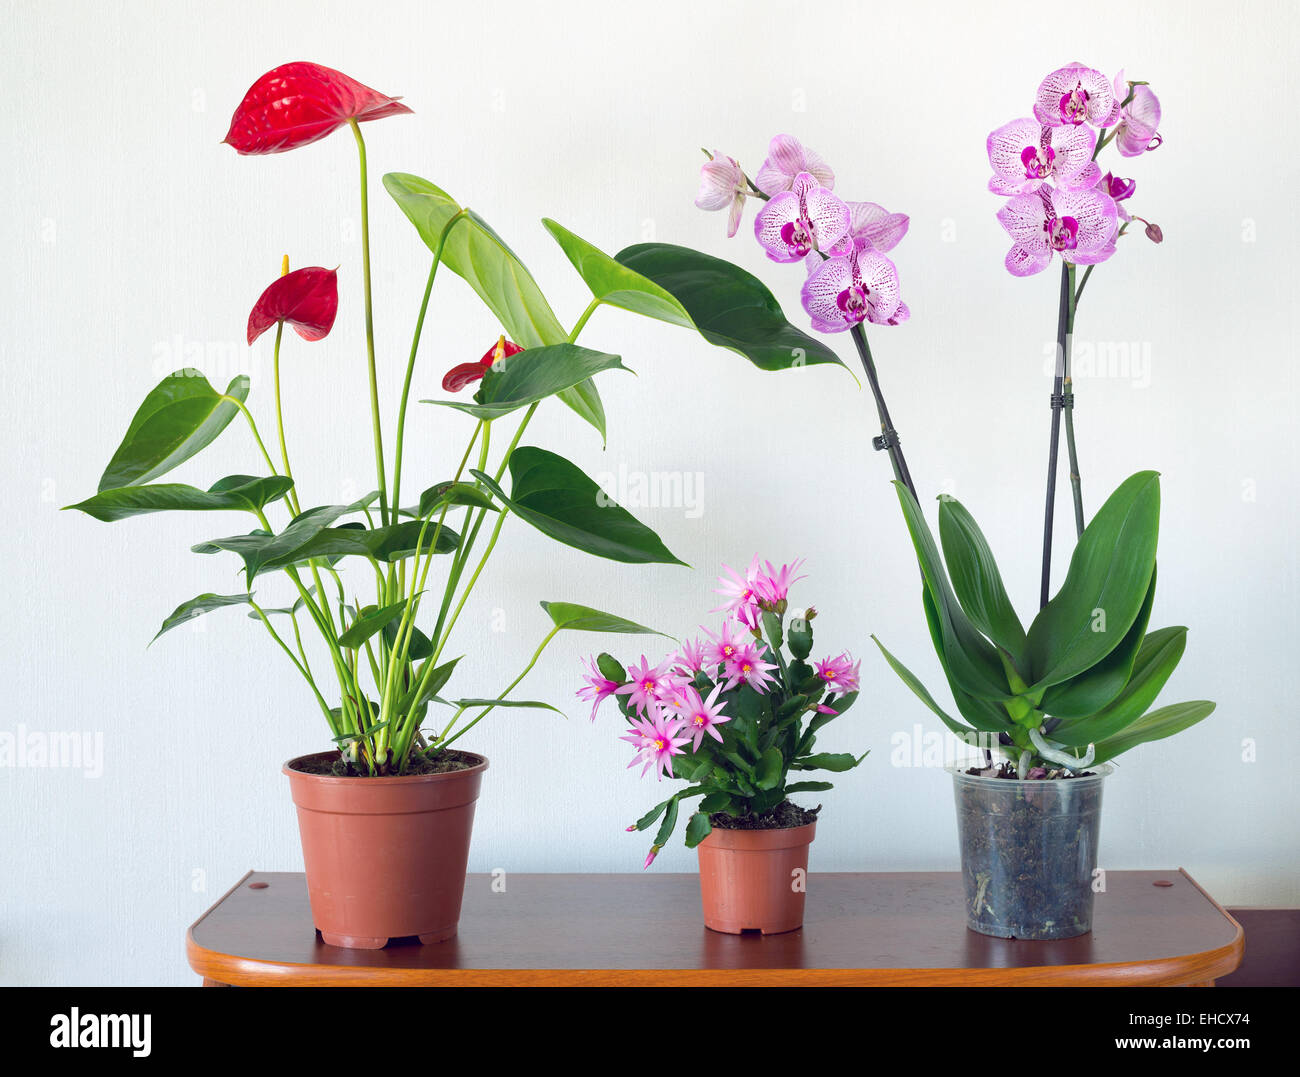 Live potted plants in pots at  interior - Stock Image